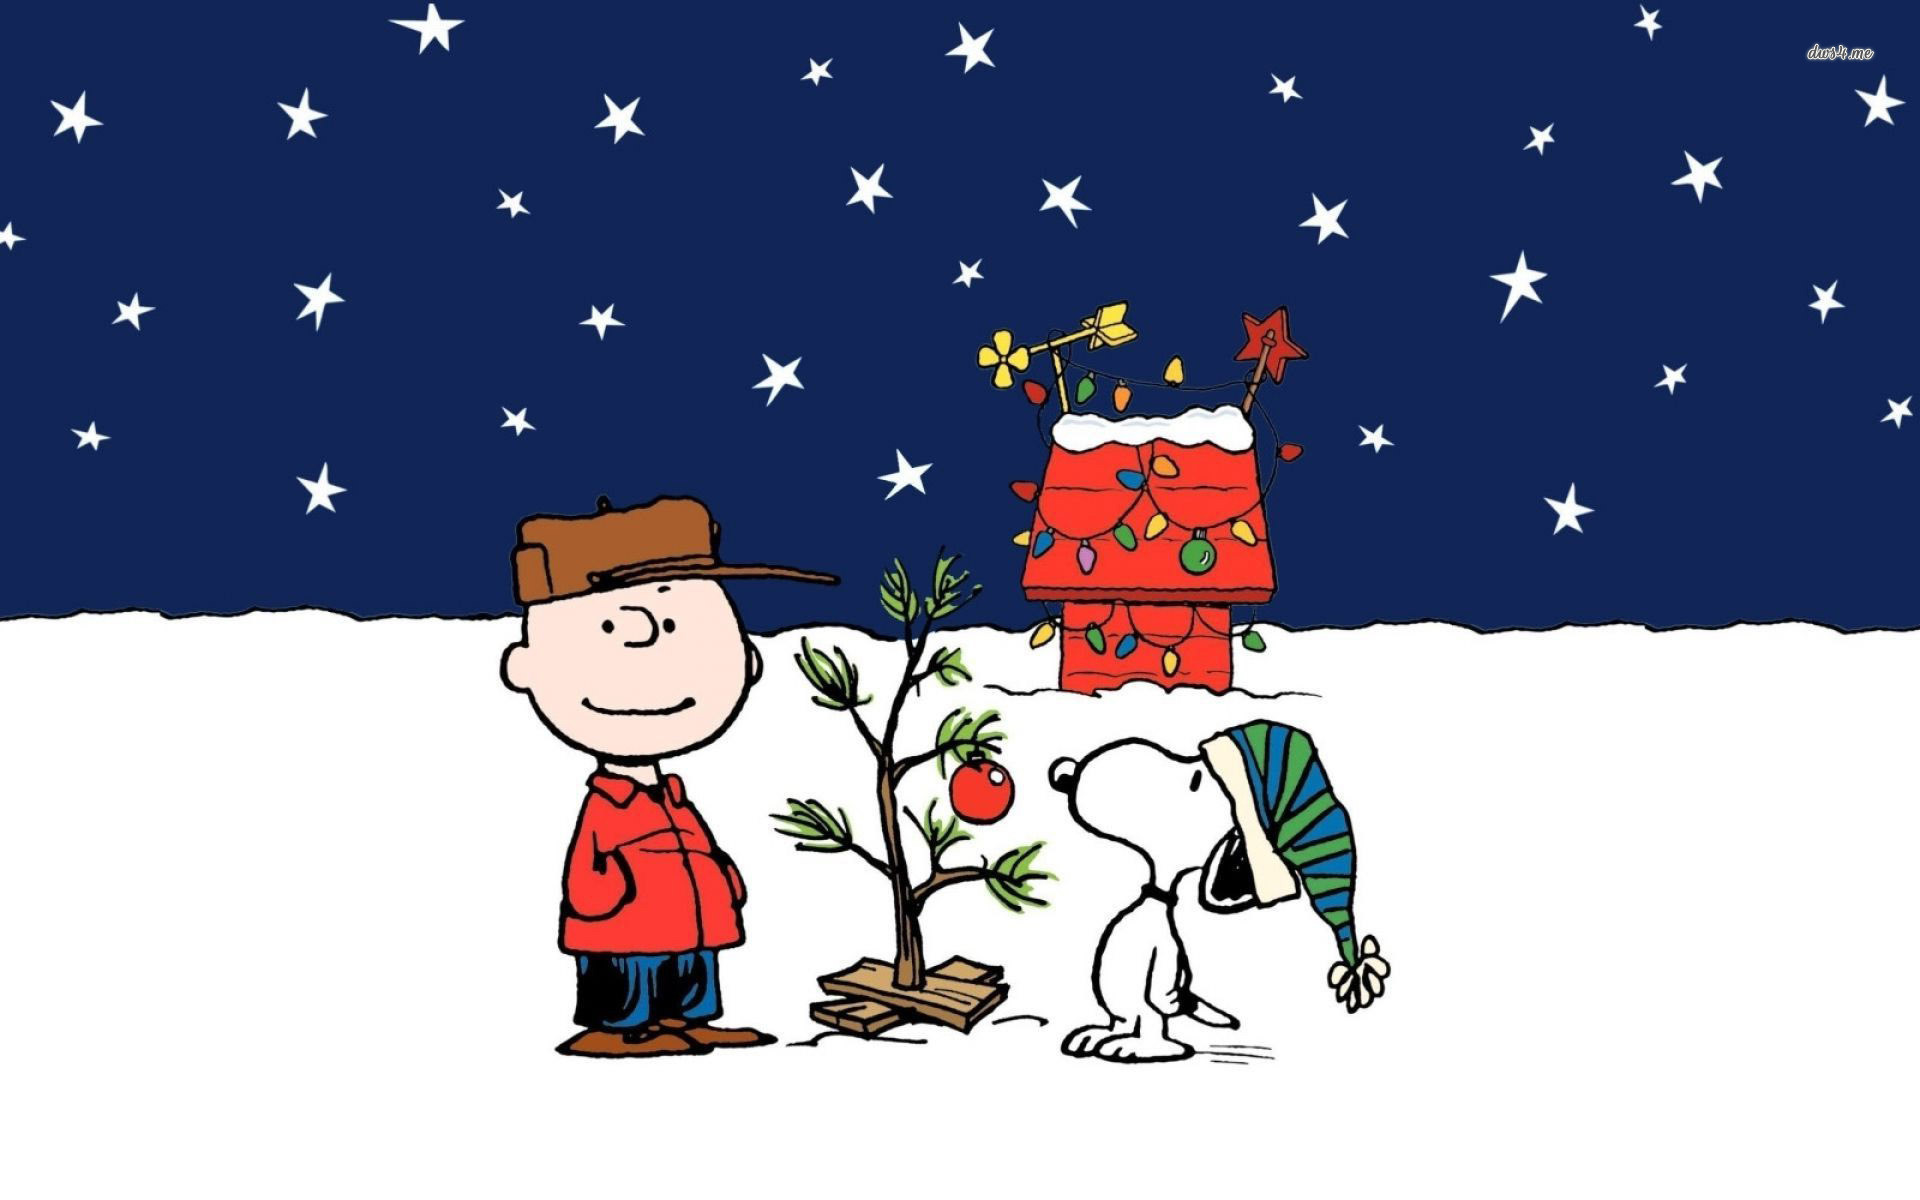 Snoopy Christmas Wallpaper ·â'